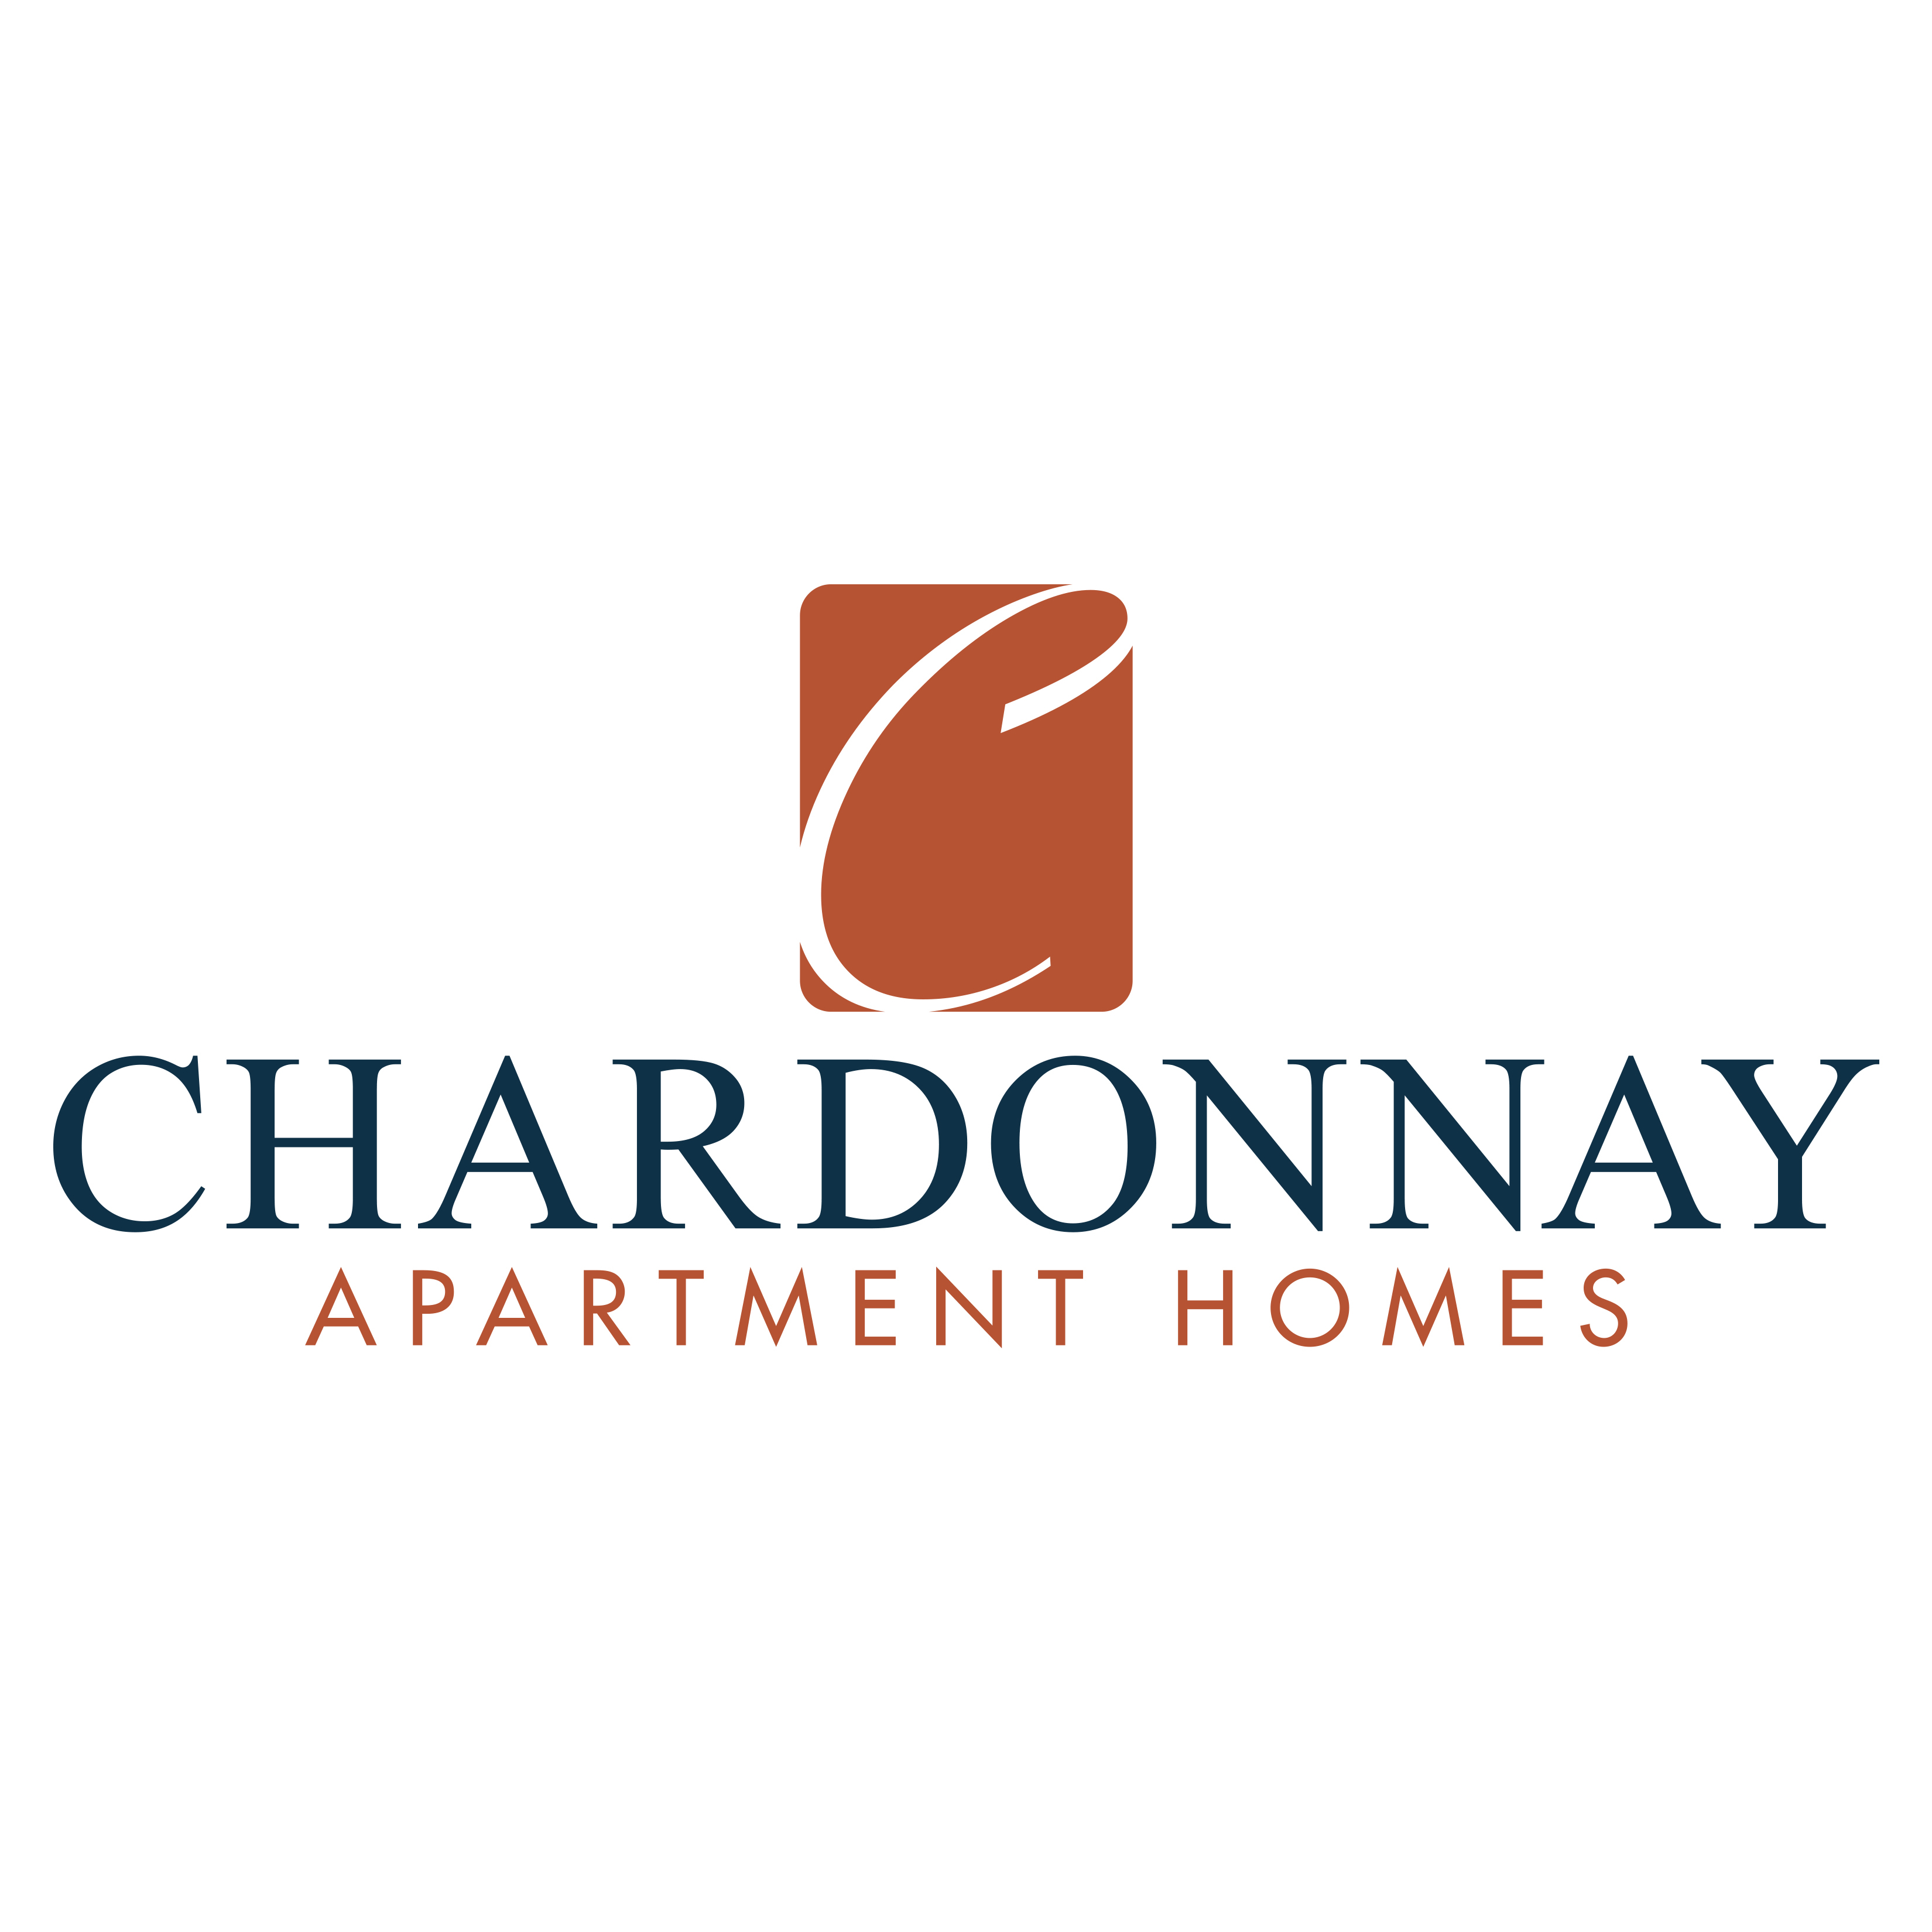 Chardonnay Apartments